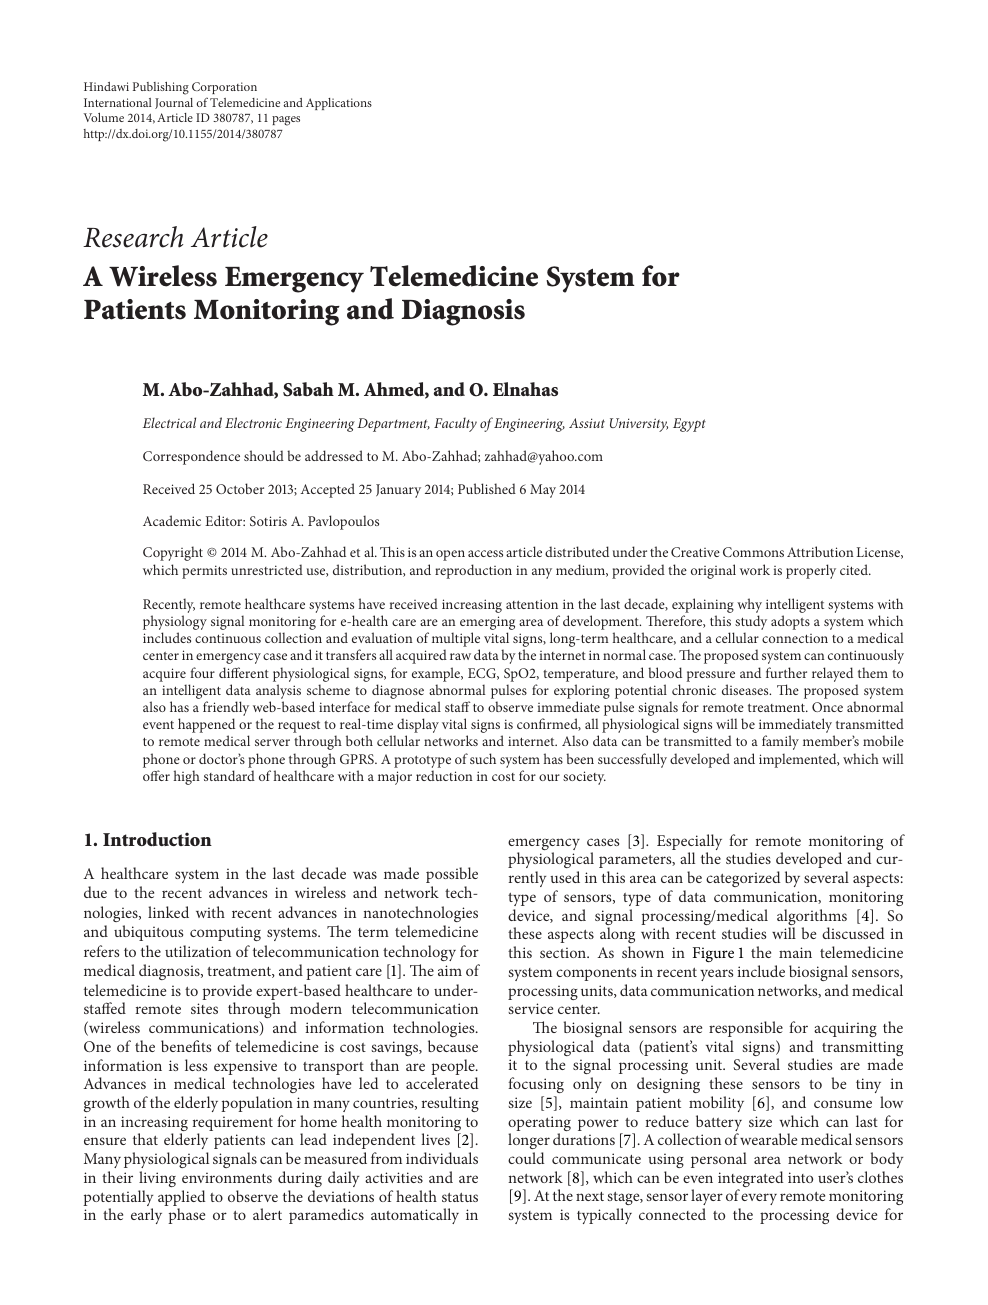 A Wireless Emergency Telemedicine System For Patients Monitoring And Diagnosis Topic Of Research Paper In Medical Engineering Download Scholarly Article Pdf And Read For Free On Cyberleninka Open Science Hub